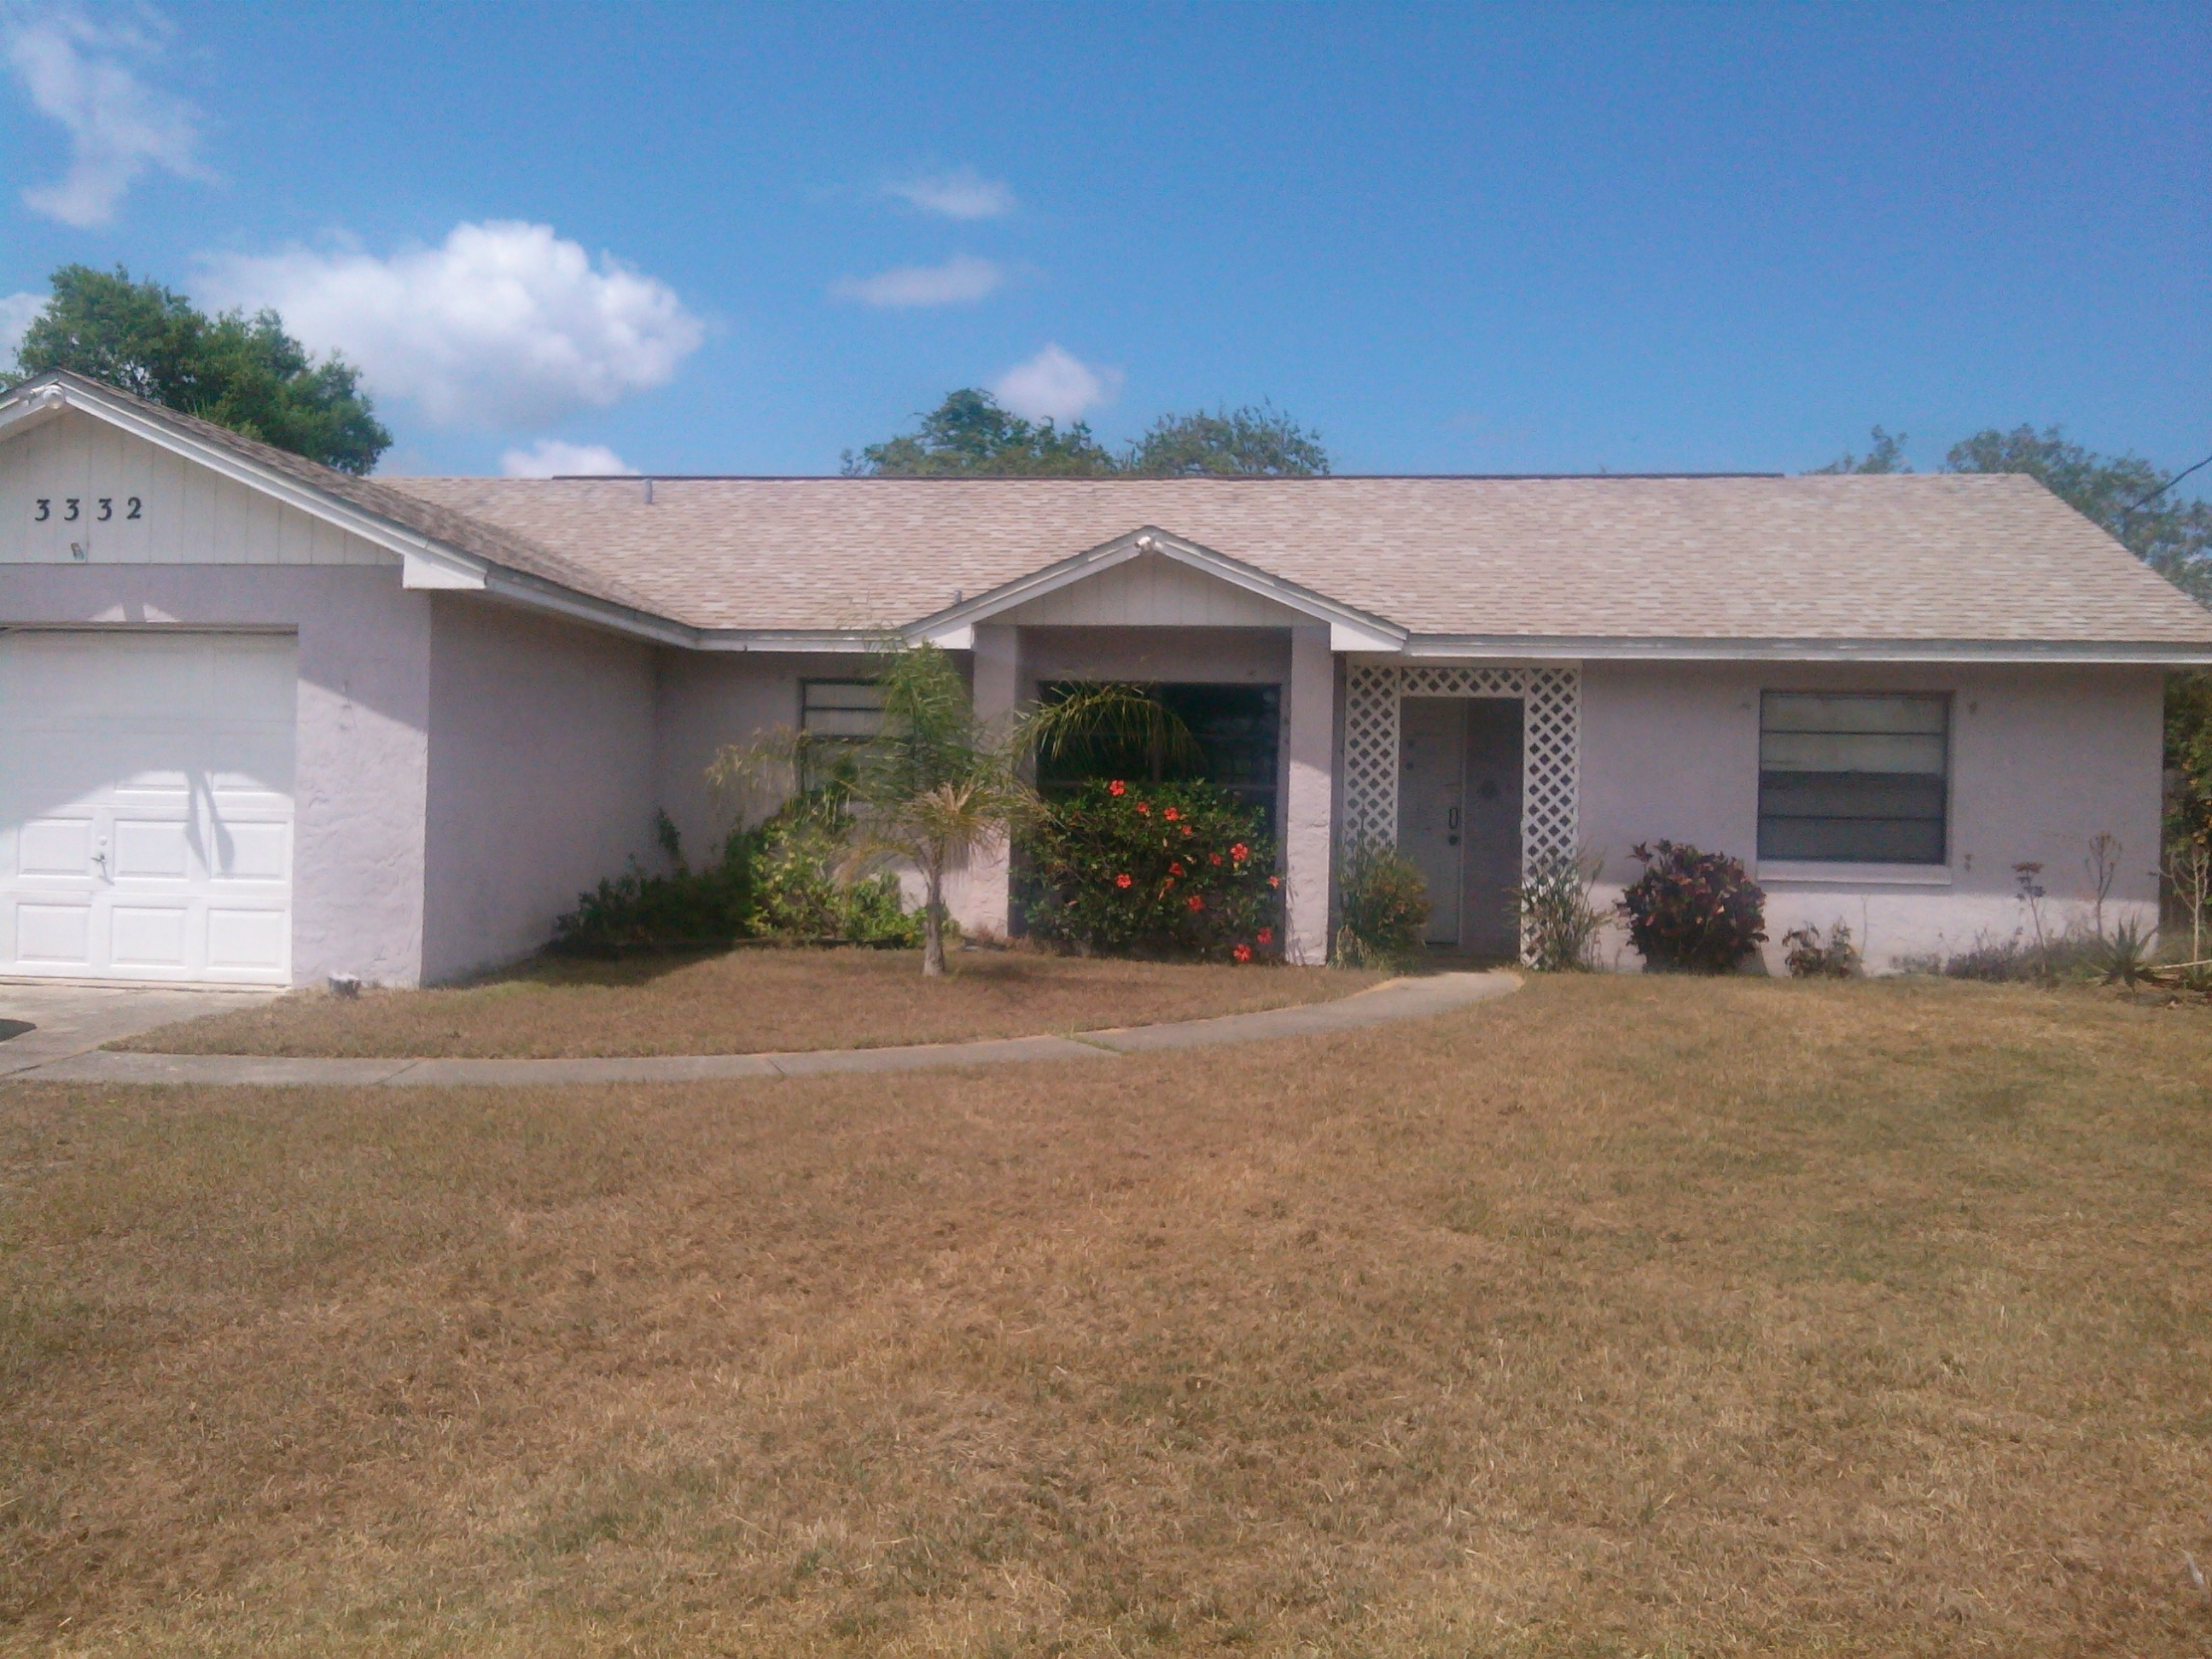 3332 Kilbee St, one of homes for sale in Mims